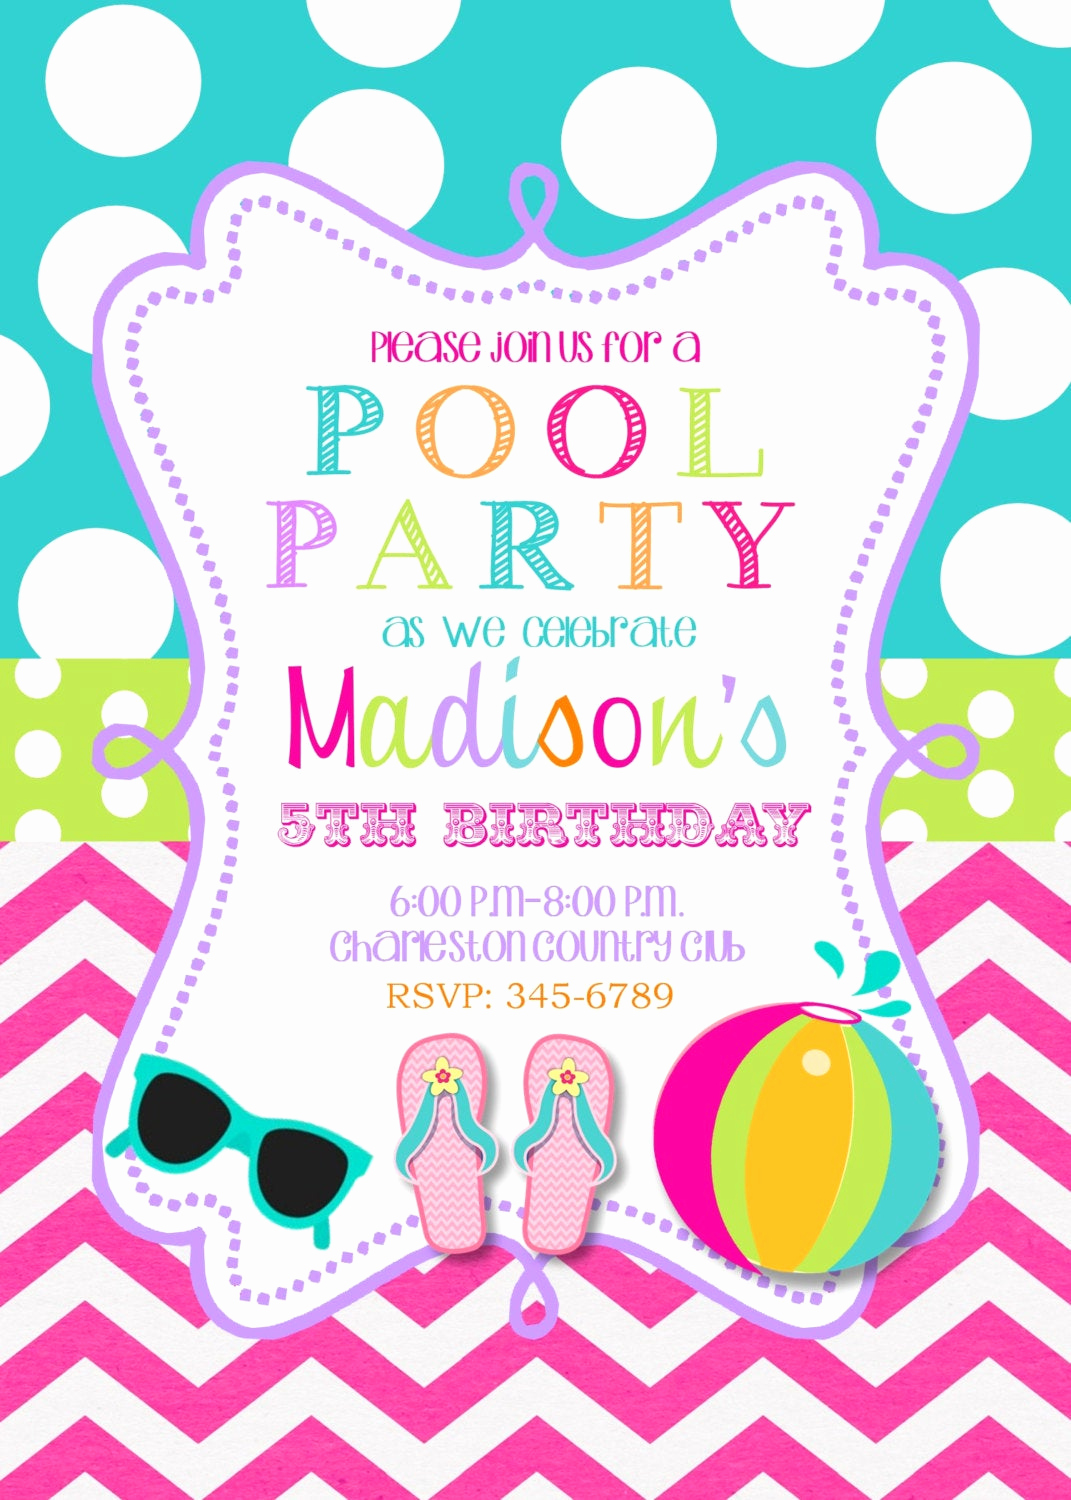 Pool Birthday Party Invitation Beautiful Pool Party Birthday Party Invitations Printable or Digital